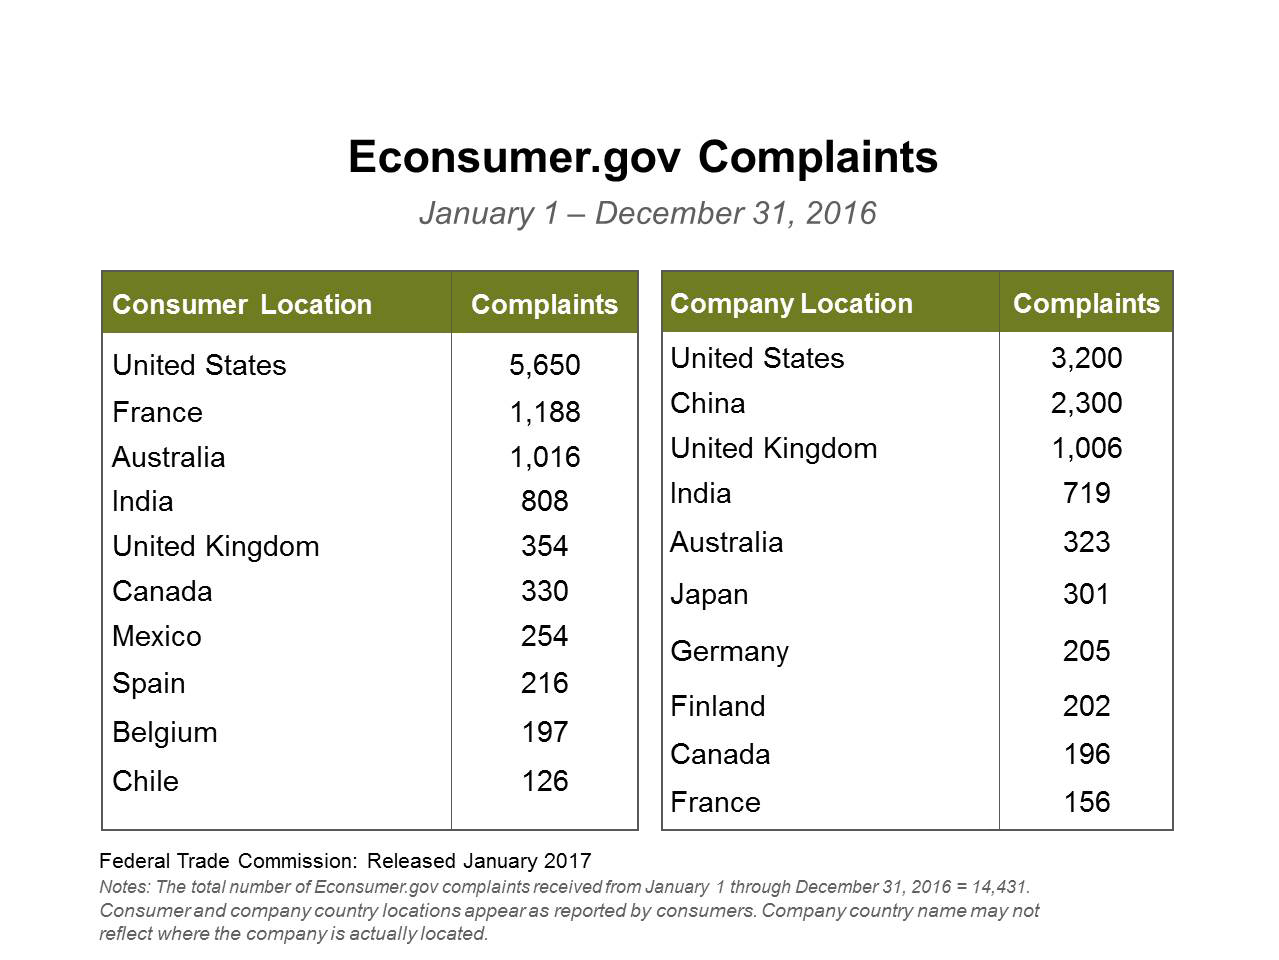 Top-10 Lists of Consumer and Company Locations